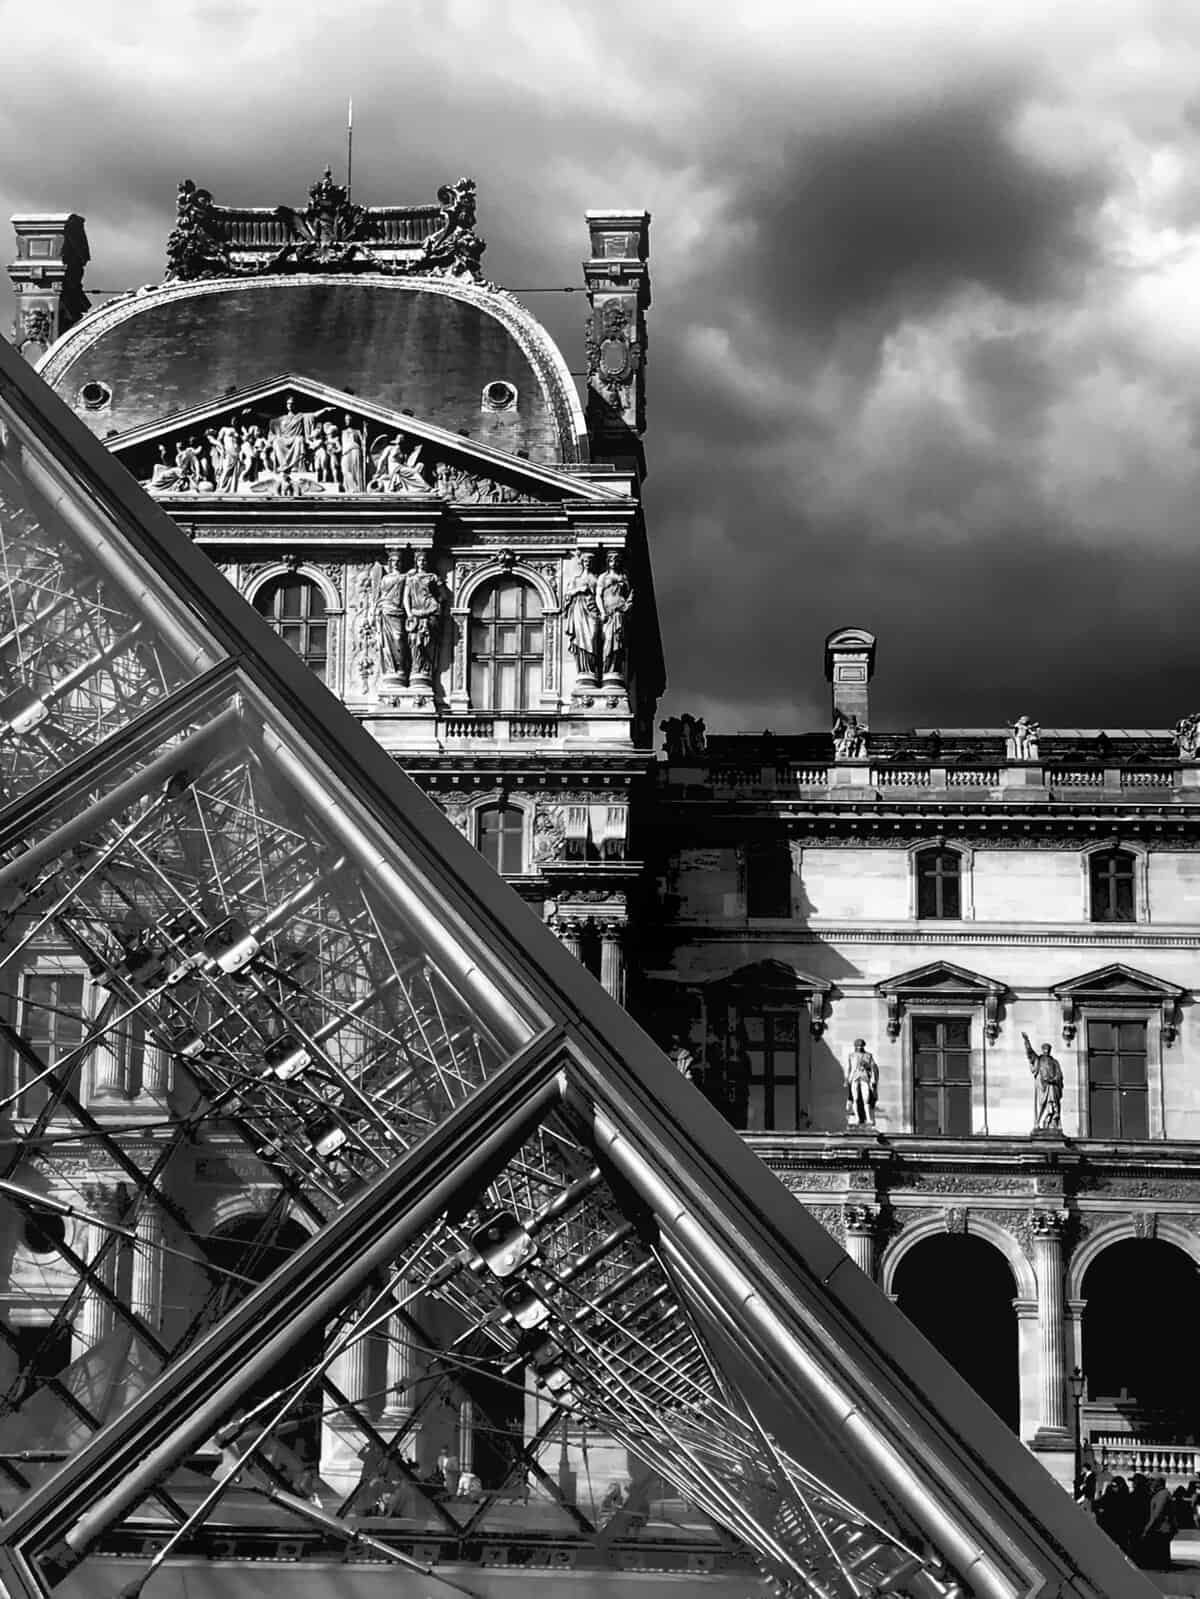 Clouds over the Louvre